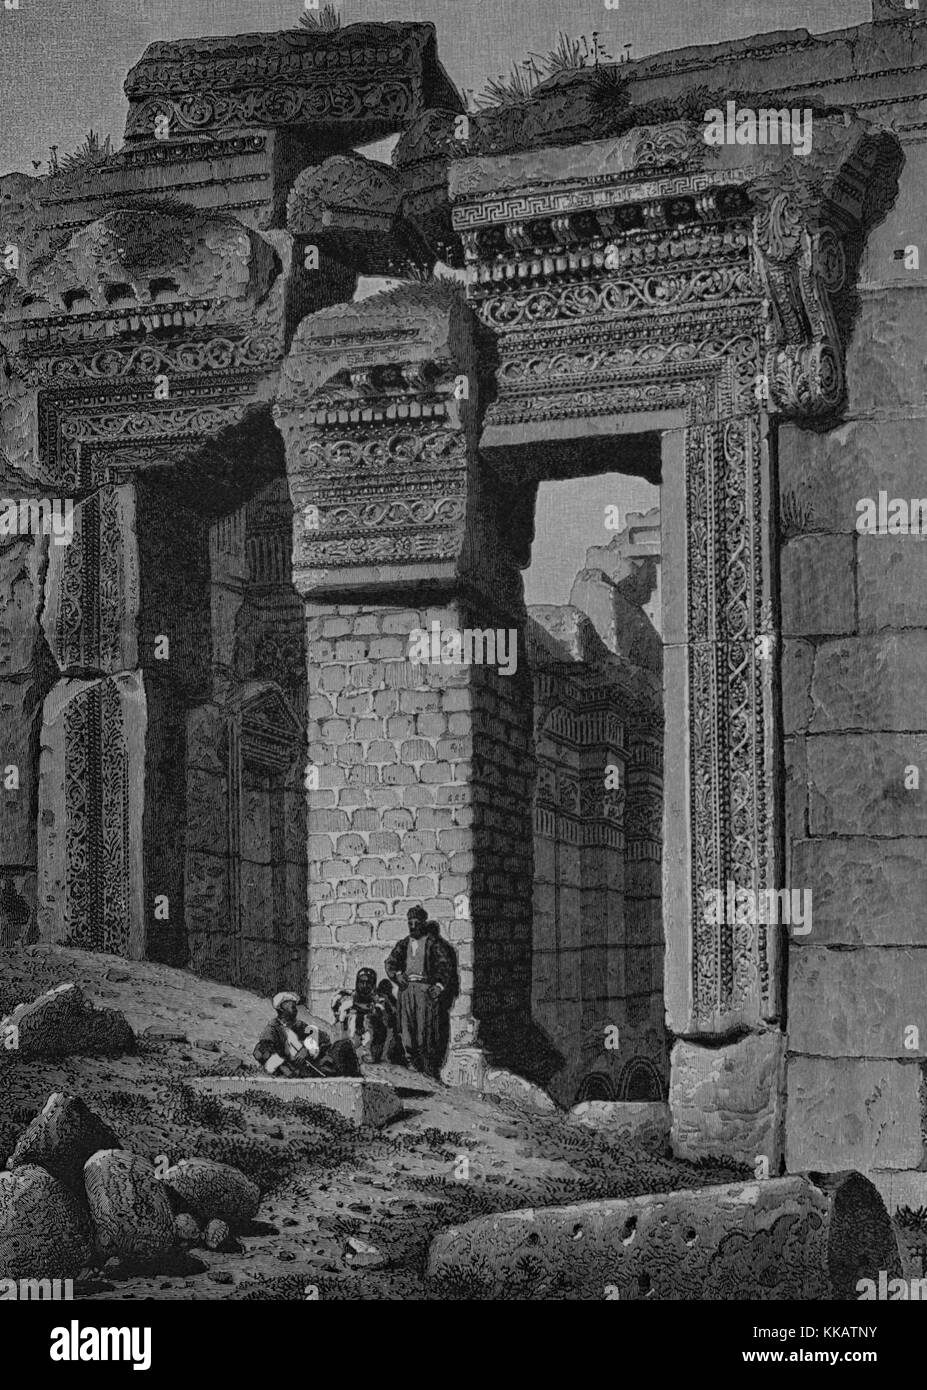 Wood engraving depicting a large stone entry, three men in front of it, captioned 'Gateway to the Temple of - Stock Image